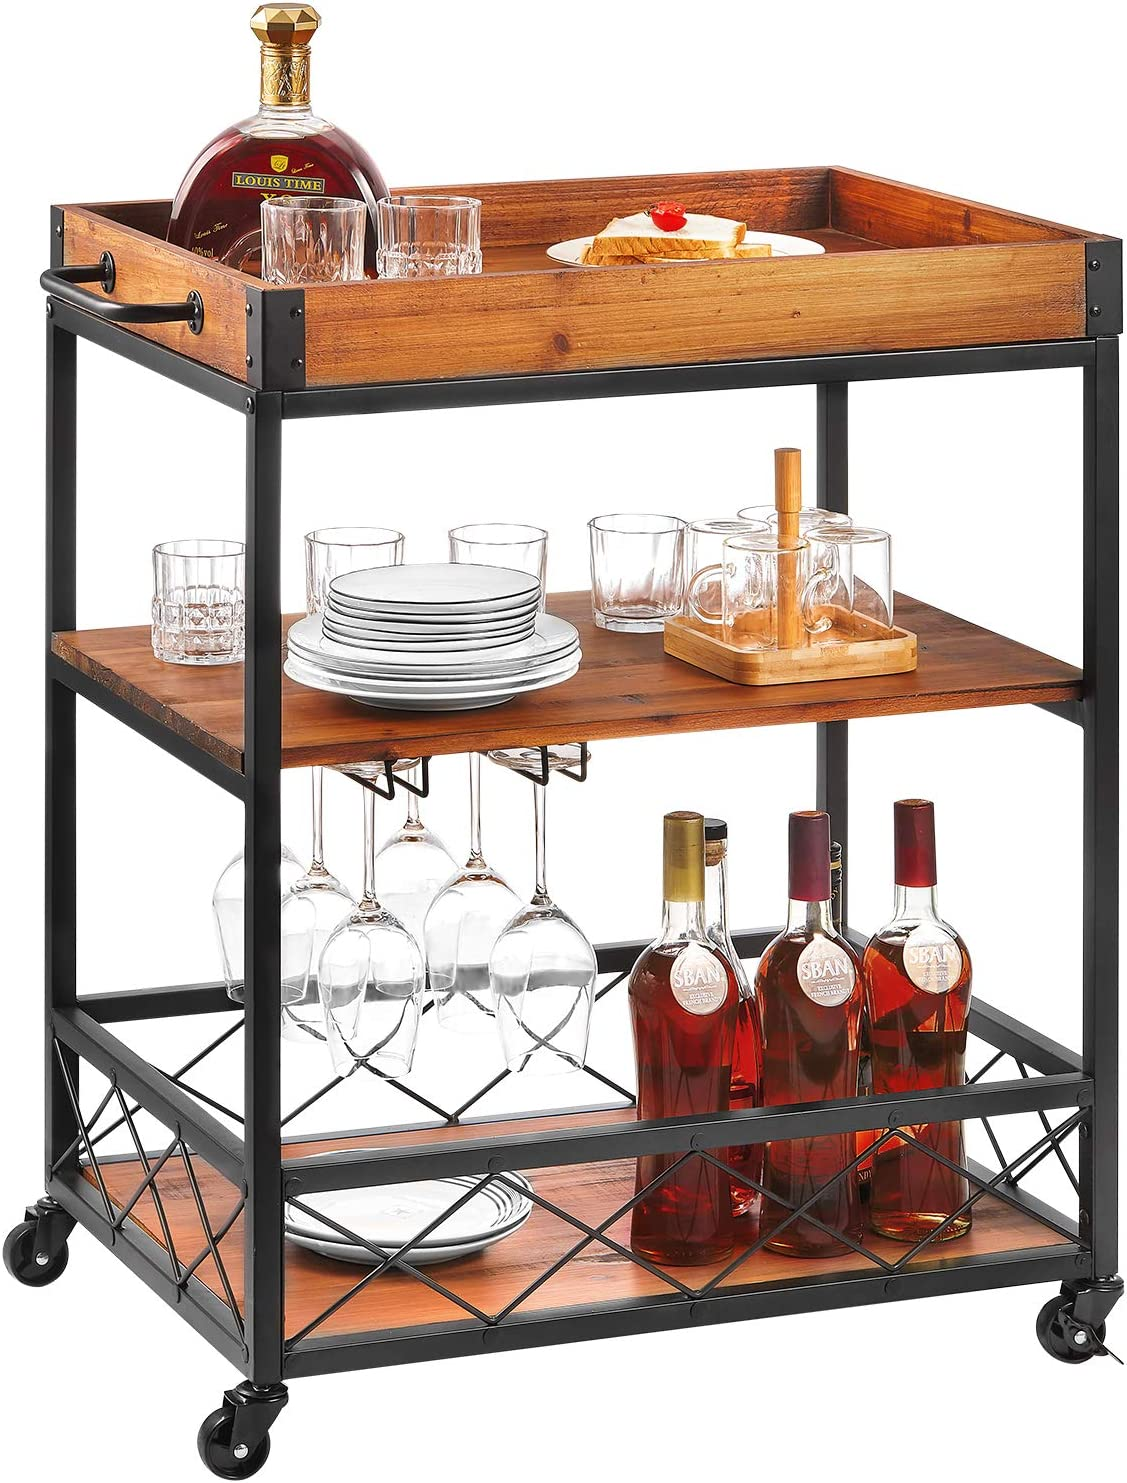 Bar Cart Kealive Kitchen Island Rolling Cart, 3-Tier Storage Shelf with Rack, Bottle Holder, Removable Wood Box Container, Brown 26L x 18W x 32.5in H